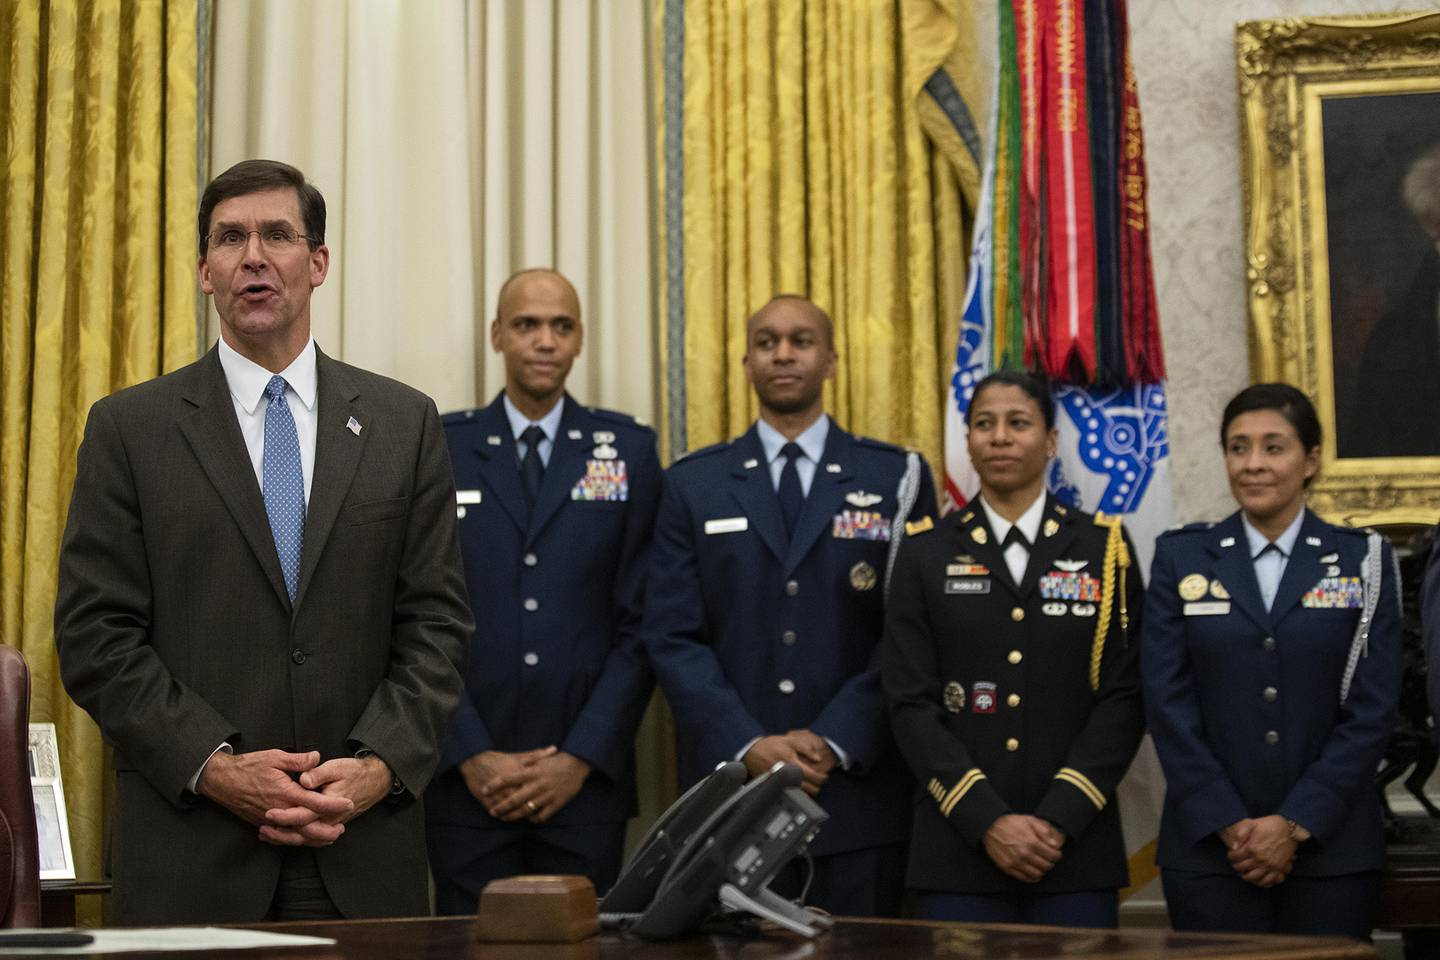 Secretary of Defense Mark Esper, left, speaks after a ceremony to swear in Gen. Charles Q. Brown Jr. as chief of staff of the Air Force in the Oval Office of the White House, Tuesday, Aug. 4, 2020, in Washington.